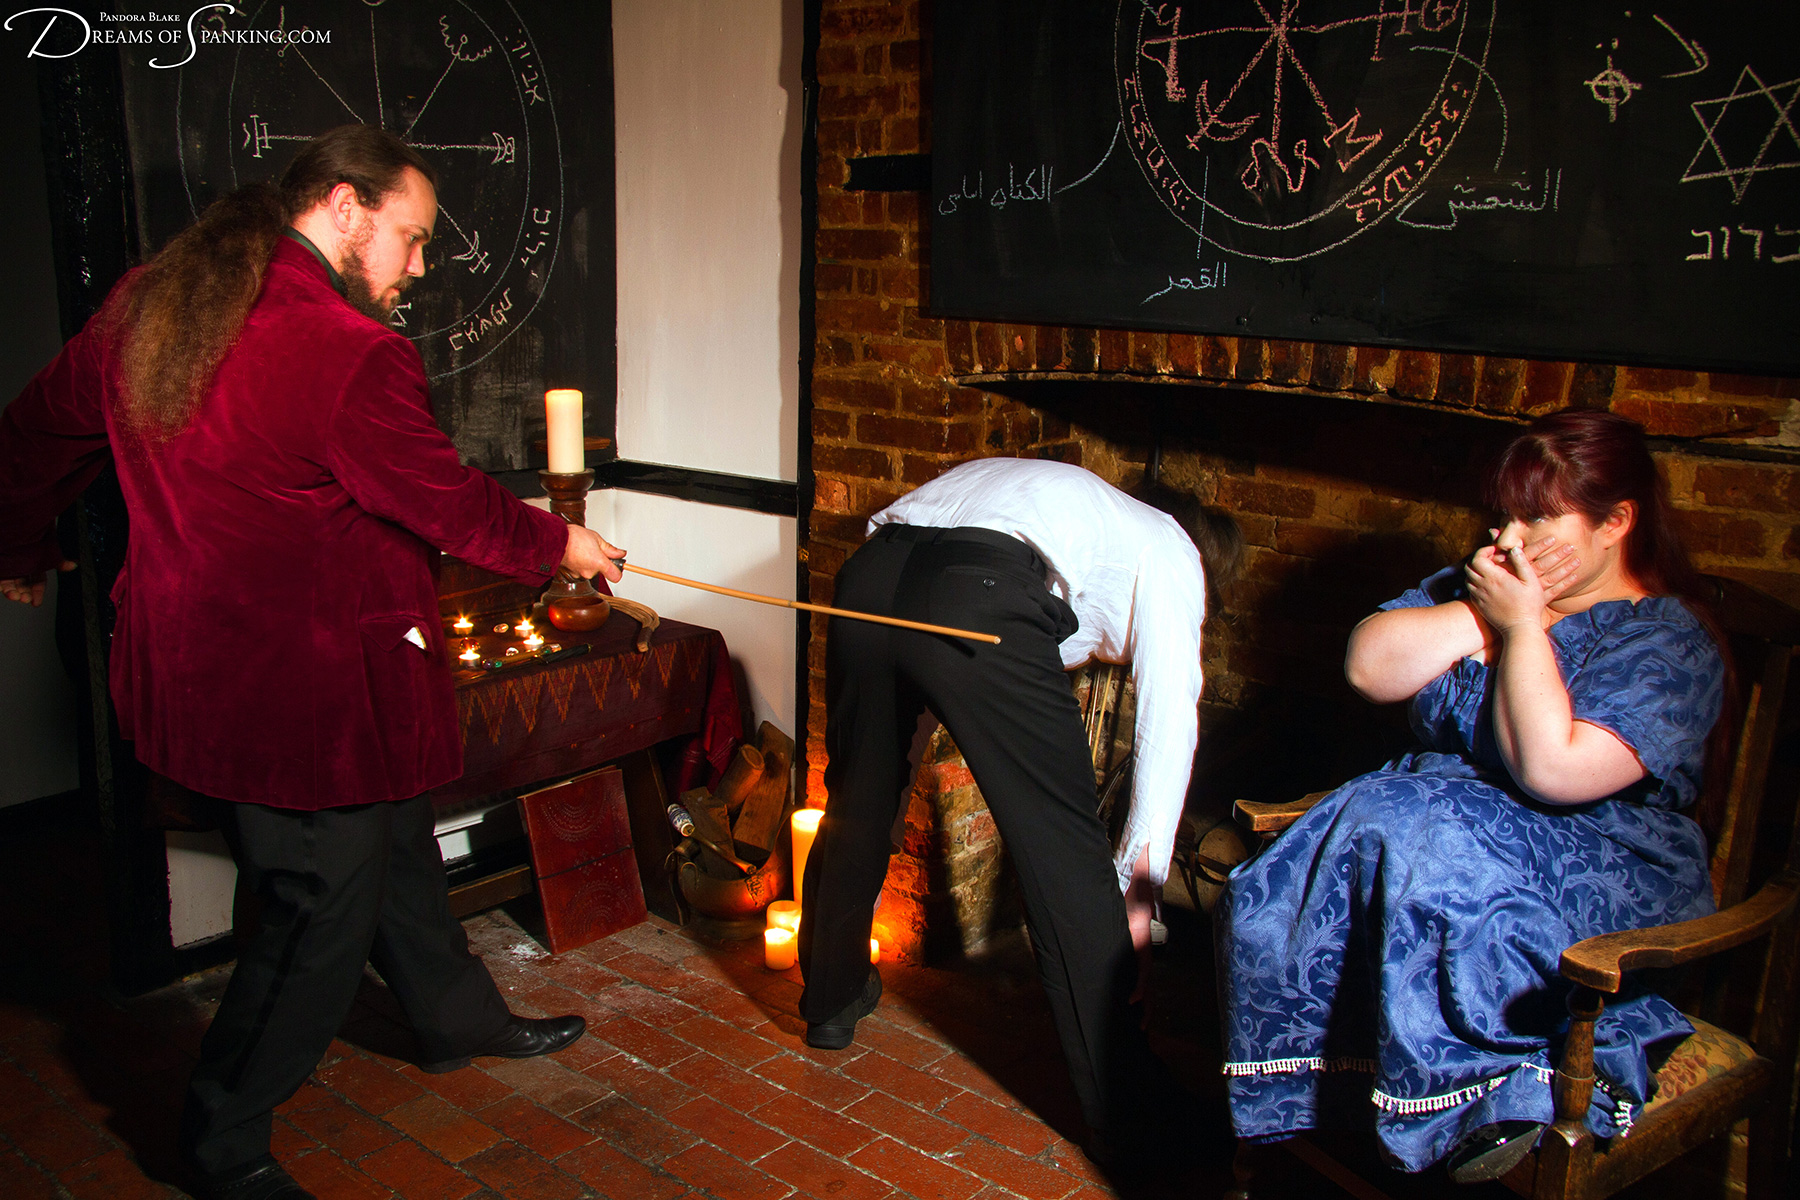 The Magician's Apprentice is in hot water at Dreams of Spanking